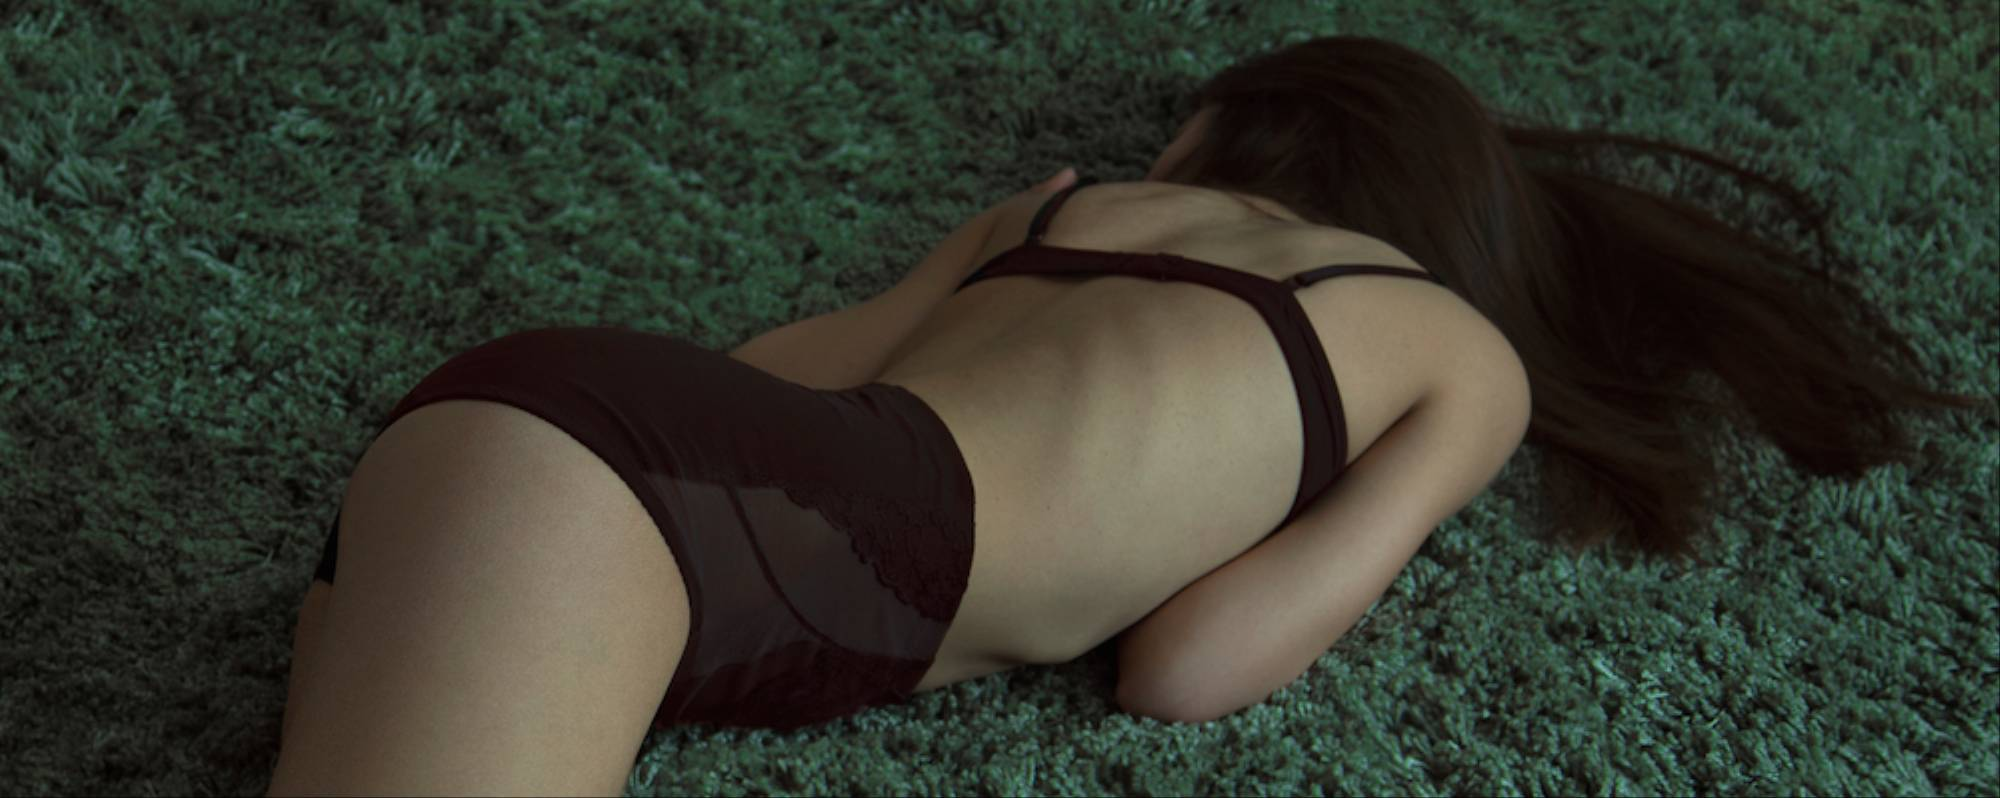 One Third of Women Are Living with Sexual Pain That's Ruining Their Lives